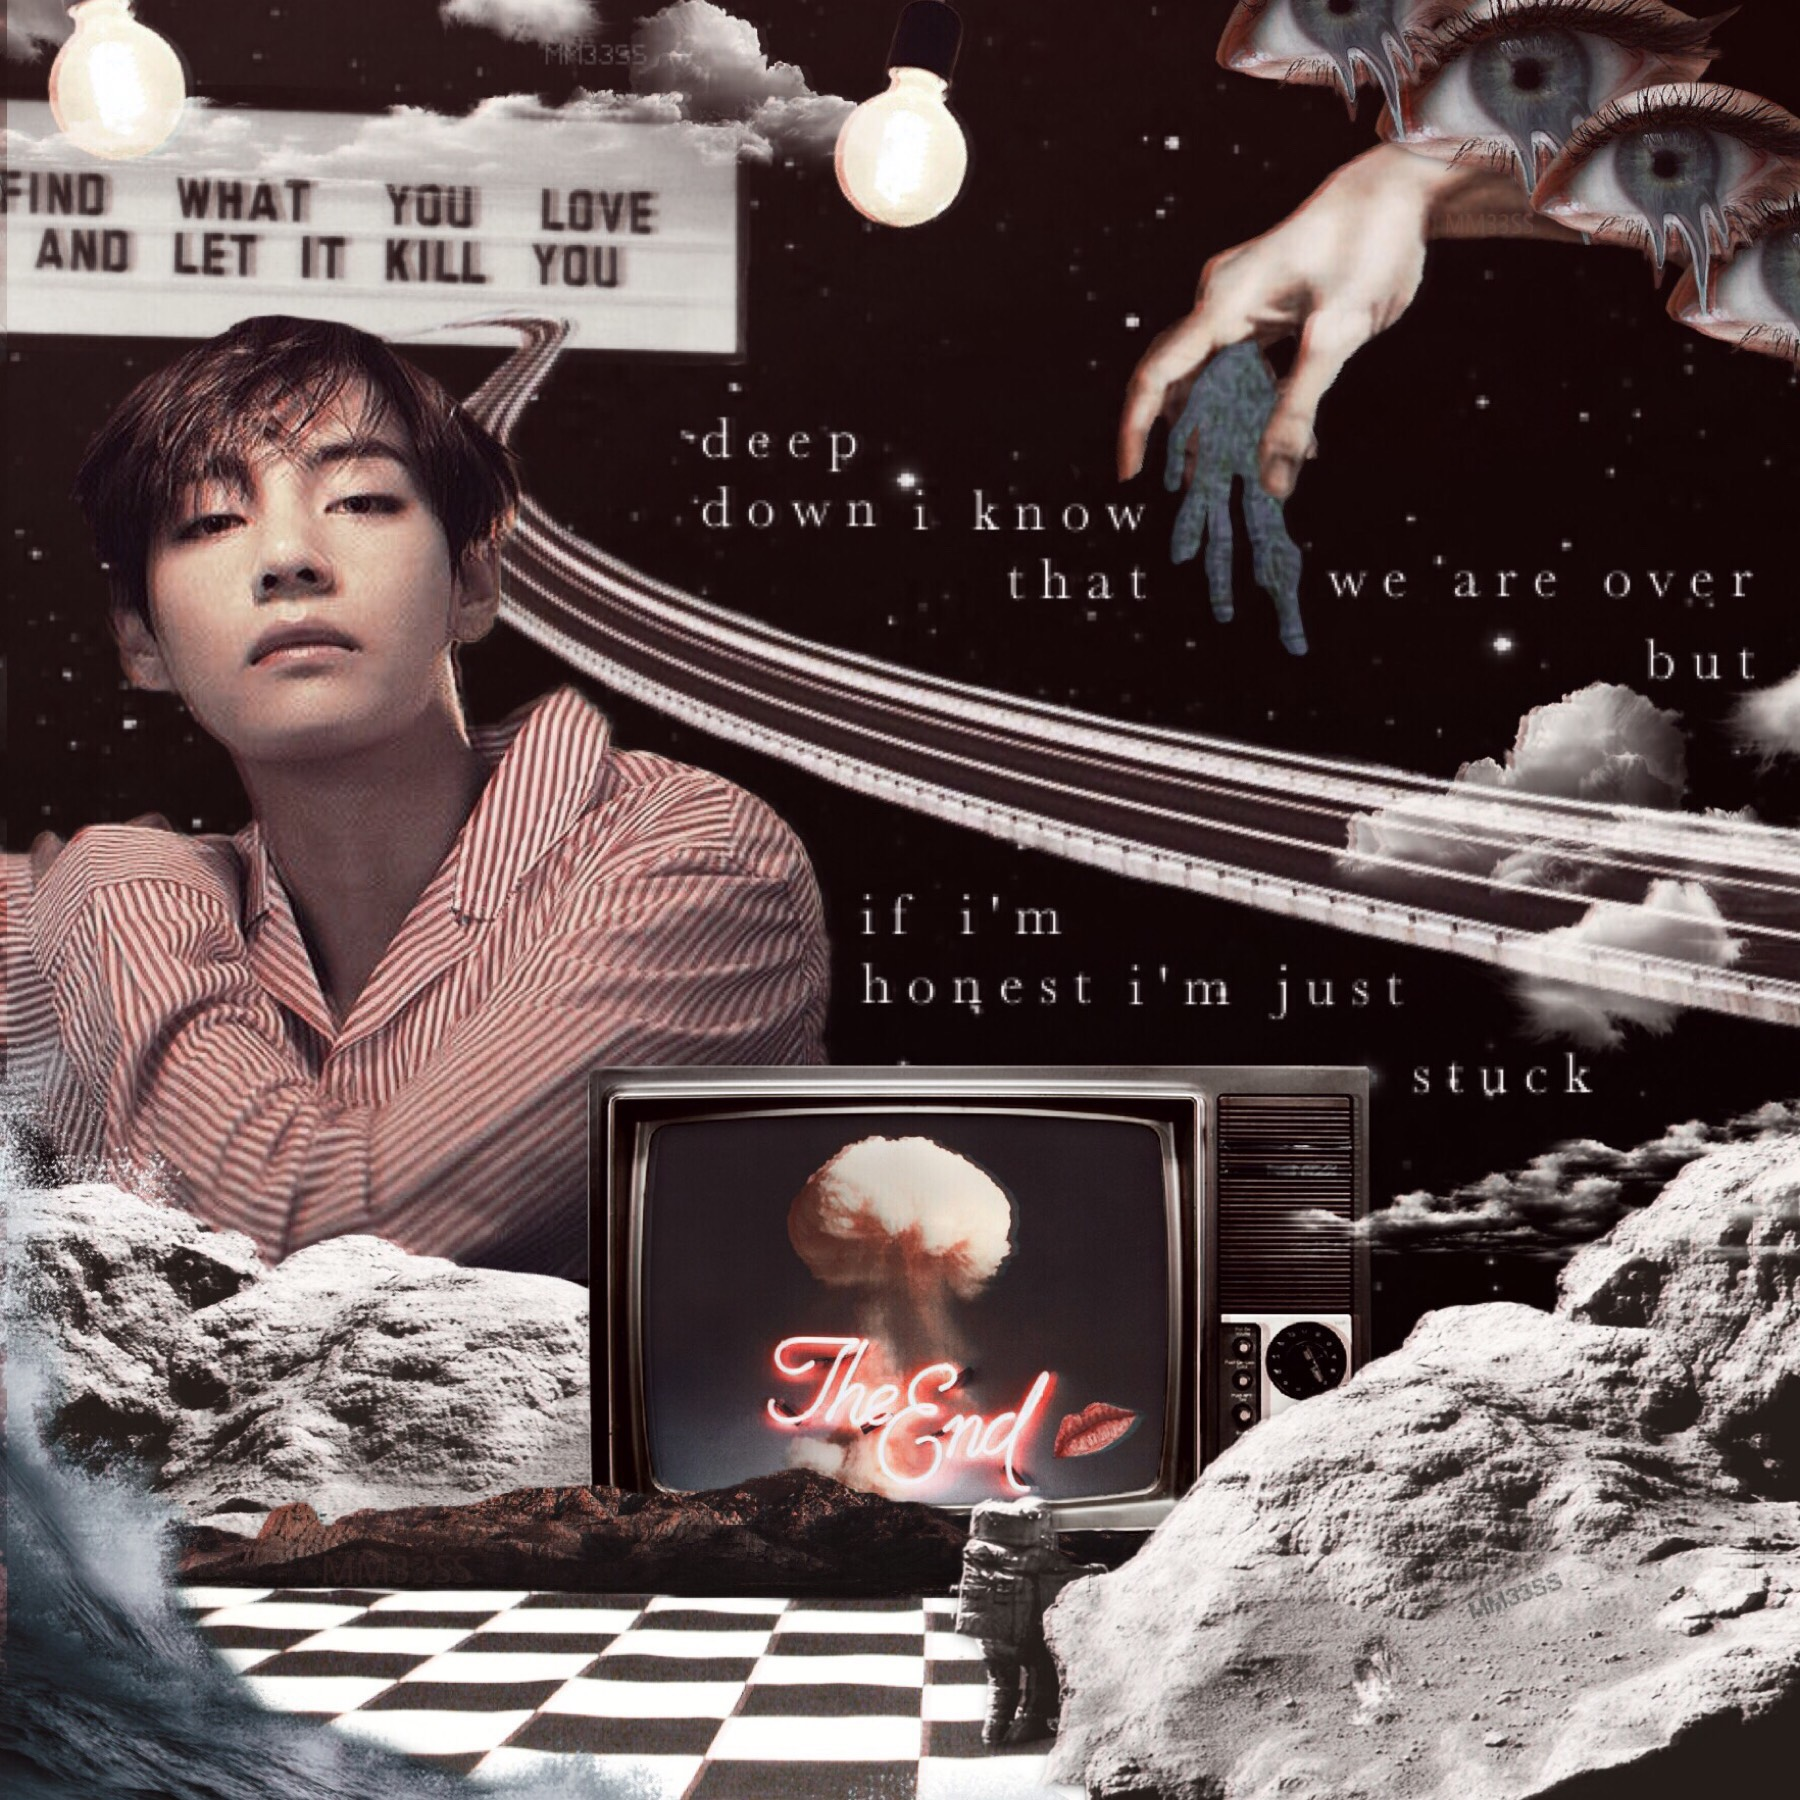 maybe / janieck x BUNT / Apr. 26, 2019  created for contest held by 1LLUS1ONS  i once thought i could post 1 edit a week. now i aim for at least 1 edit a month lol.  image: kim taehyung (V)